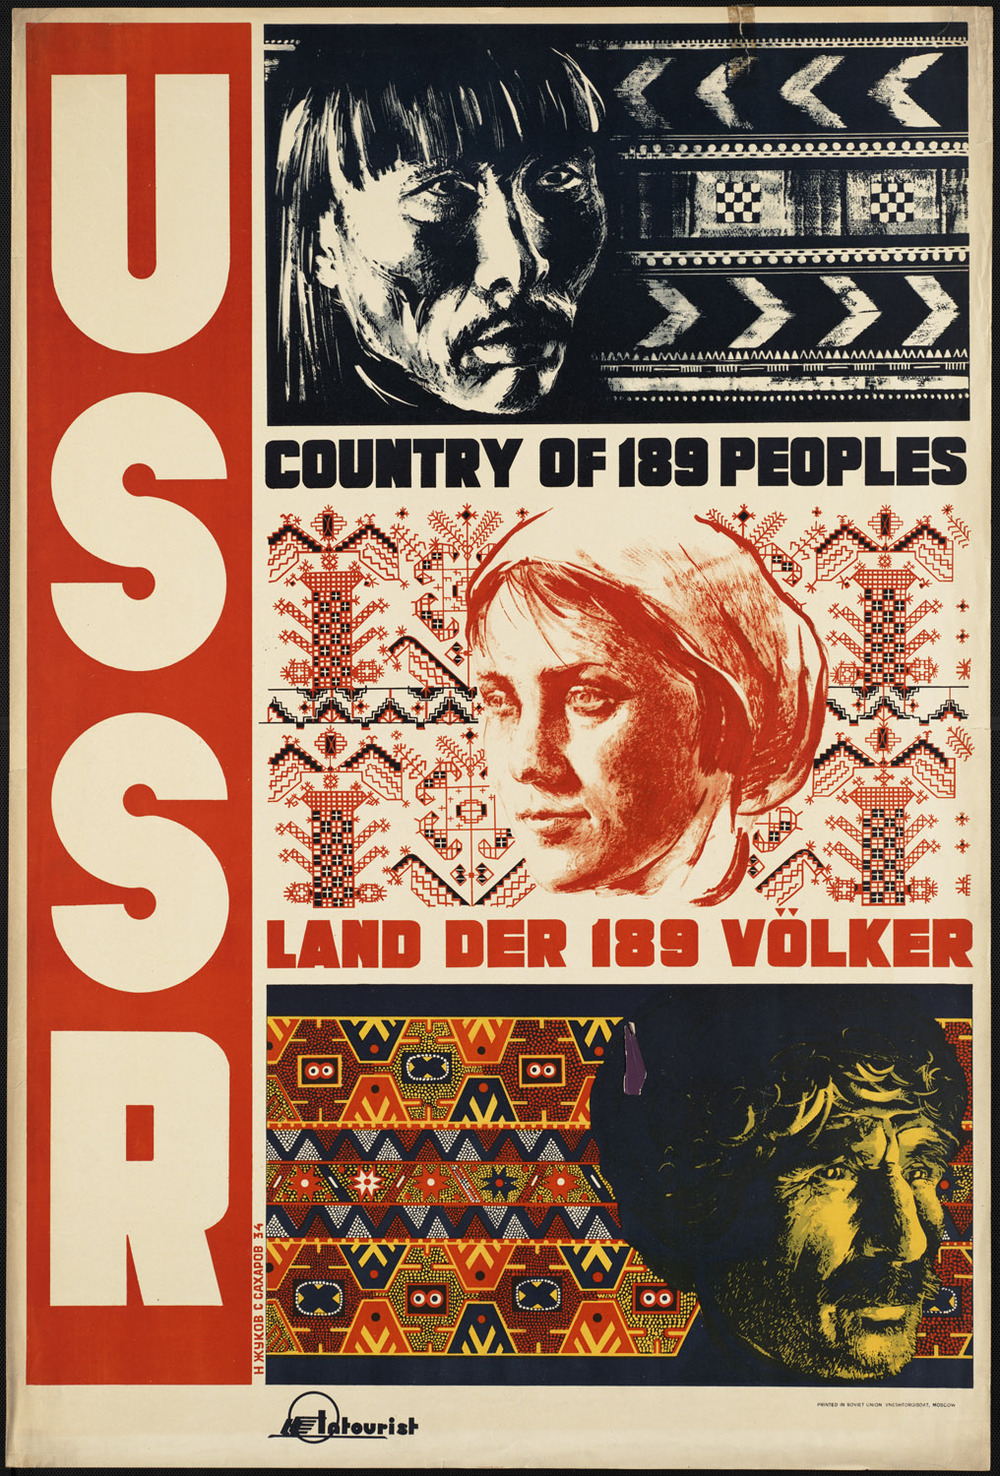 USSR._Country_of_189_peoples.jpg